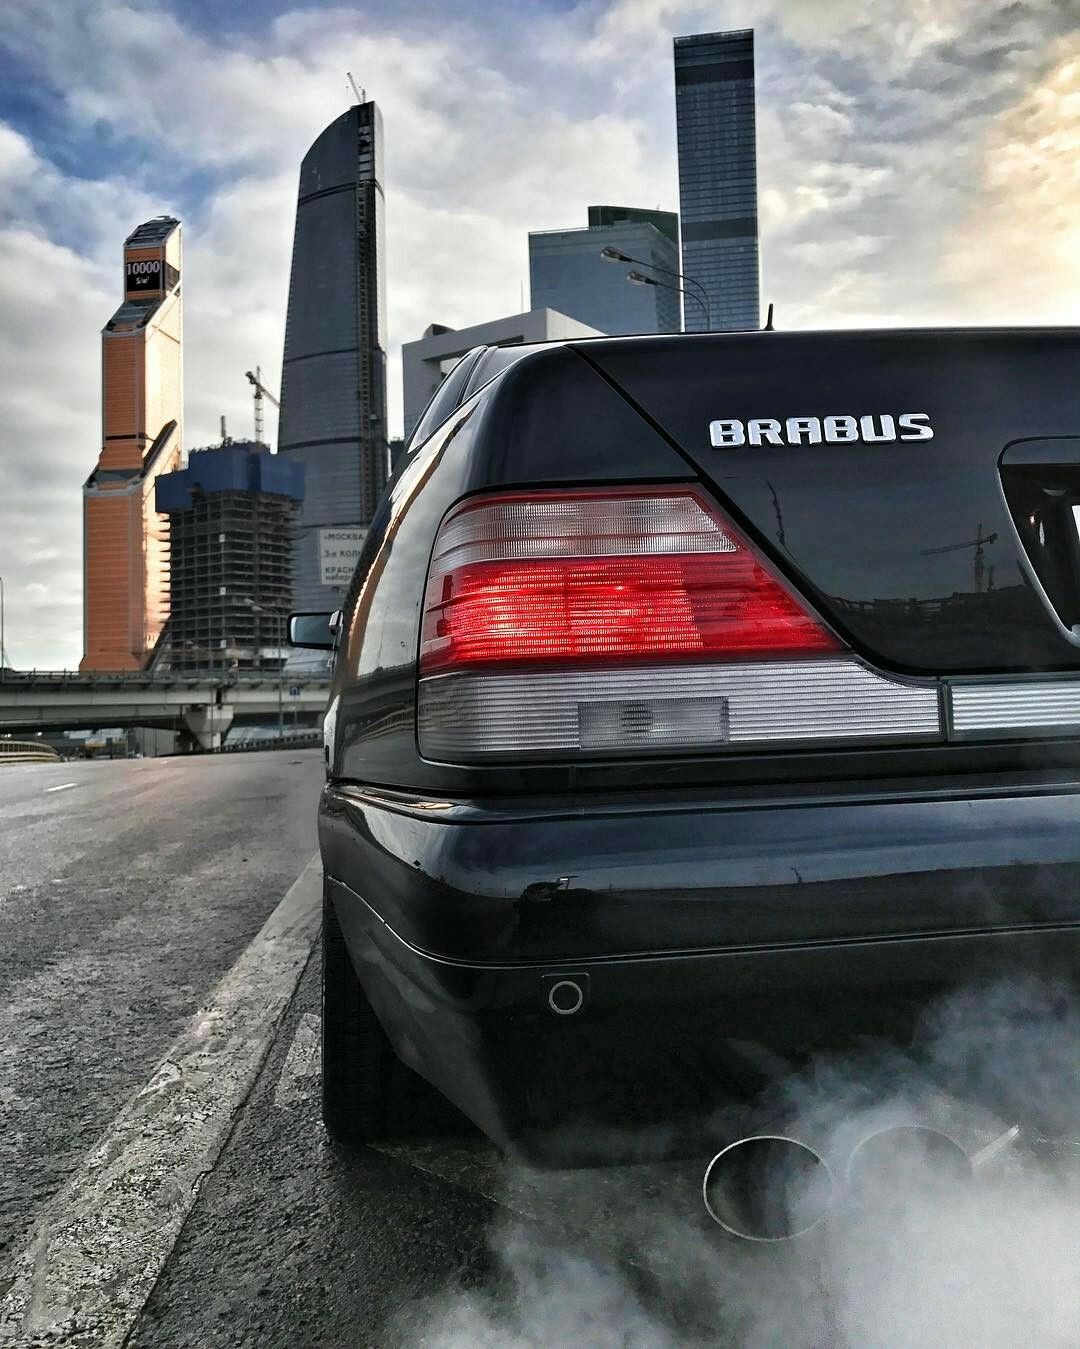 Mercedes W140 as well Wallpapers Brabus Mercedes Benz S Klasse W140 1991 93 269692 furthermore Bmw 7 Secure furthermore 288230376151940369 additionally Brabus E V12 7 3 S Und One Of Ten 1823182. on mercedes benz w140